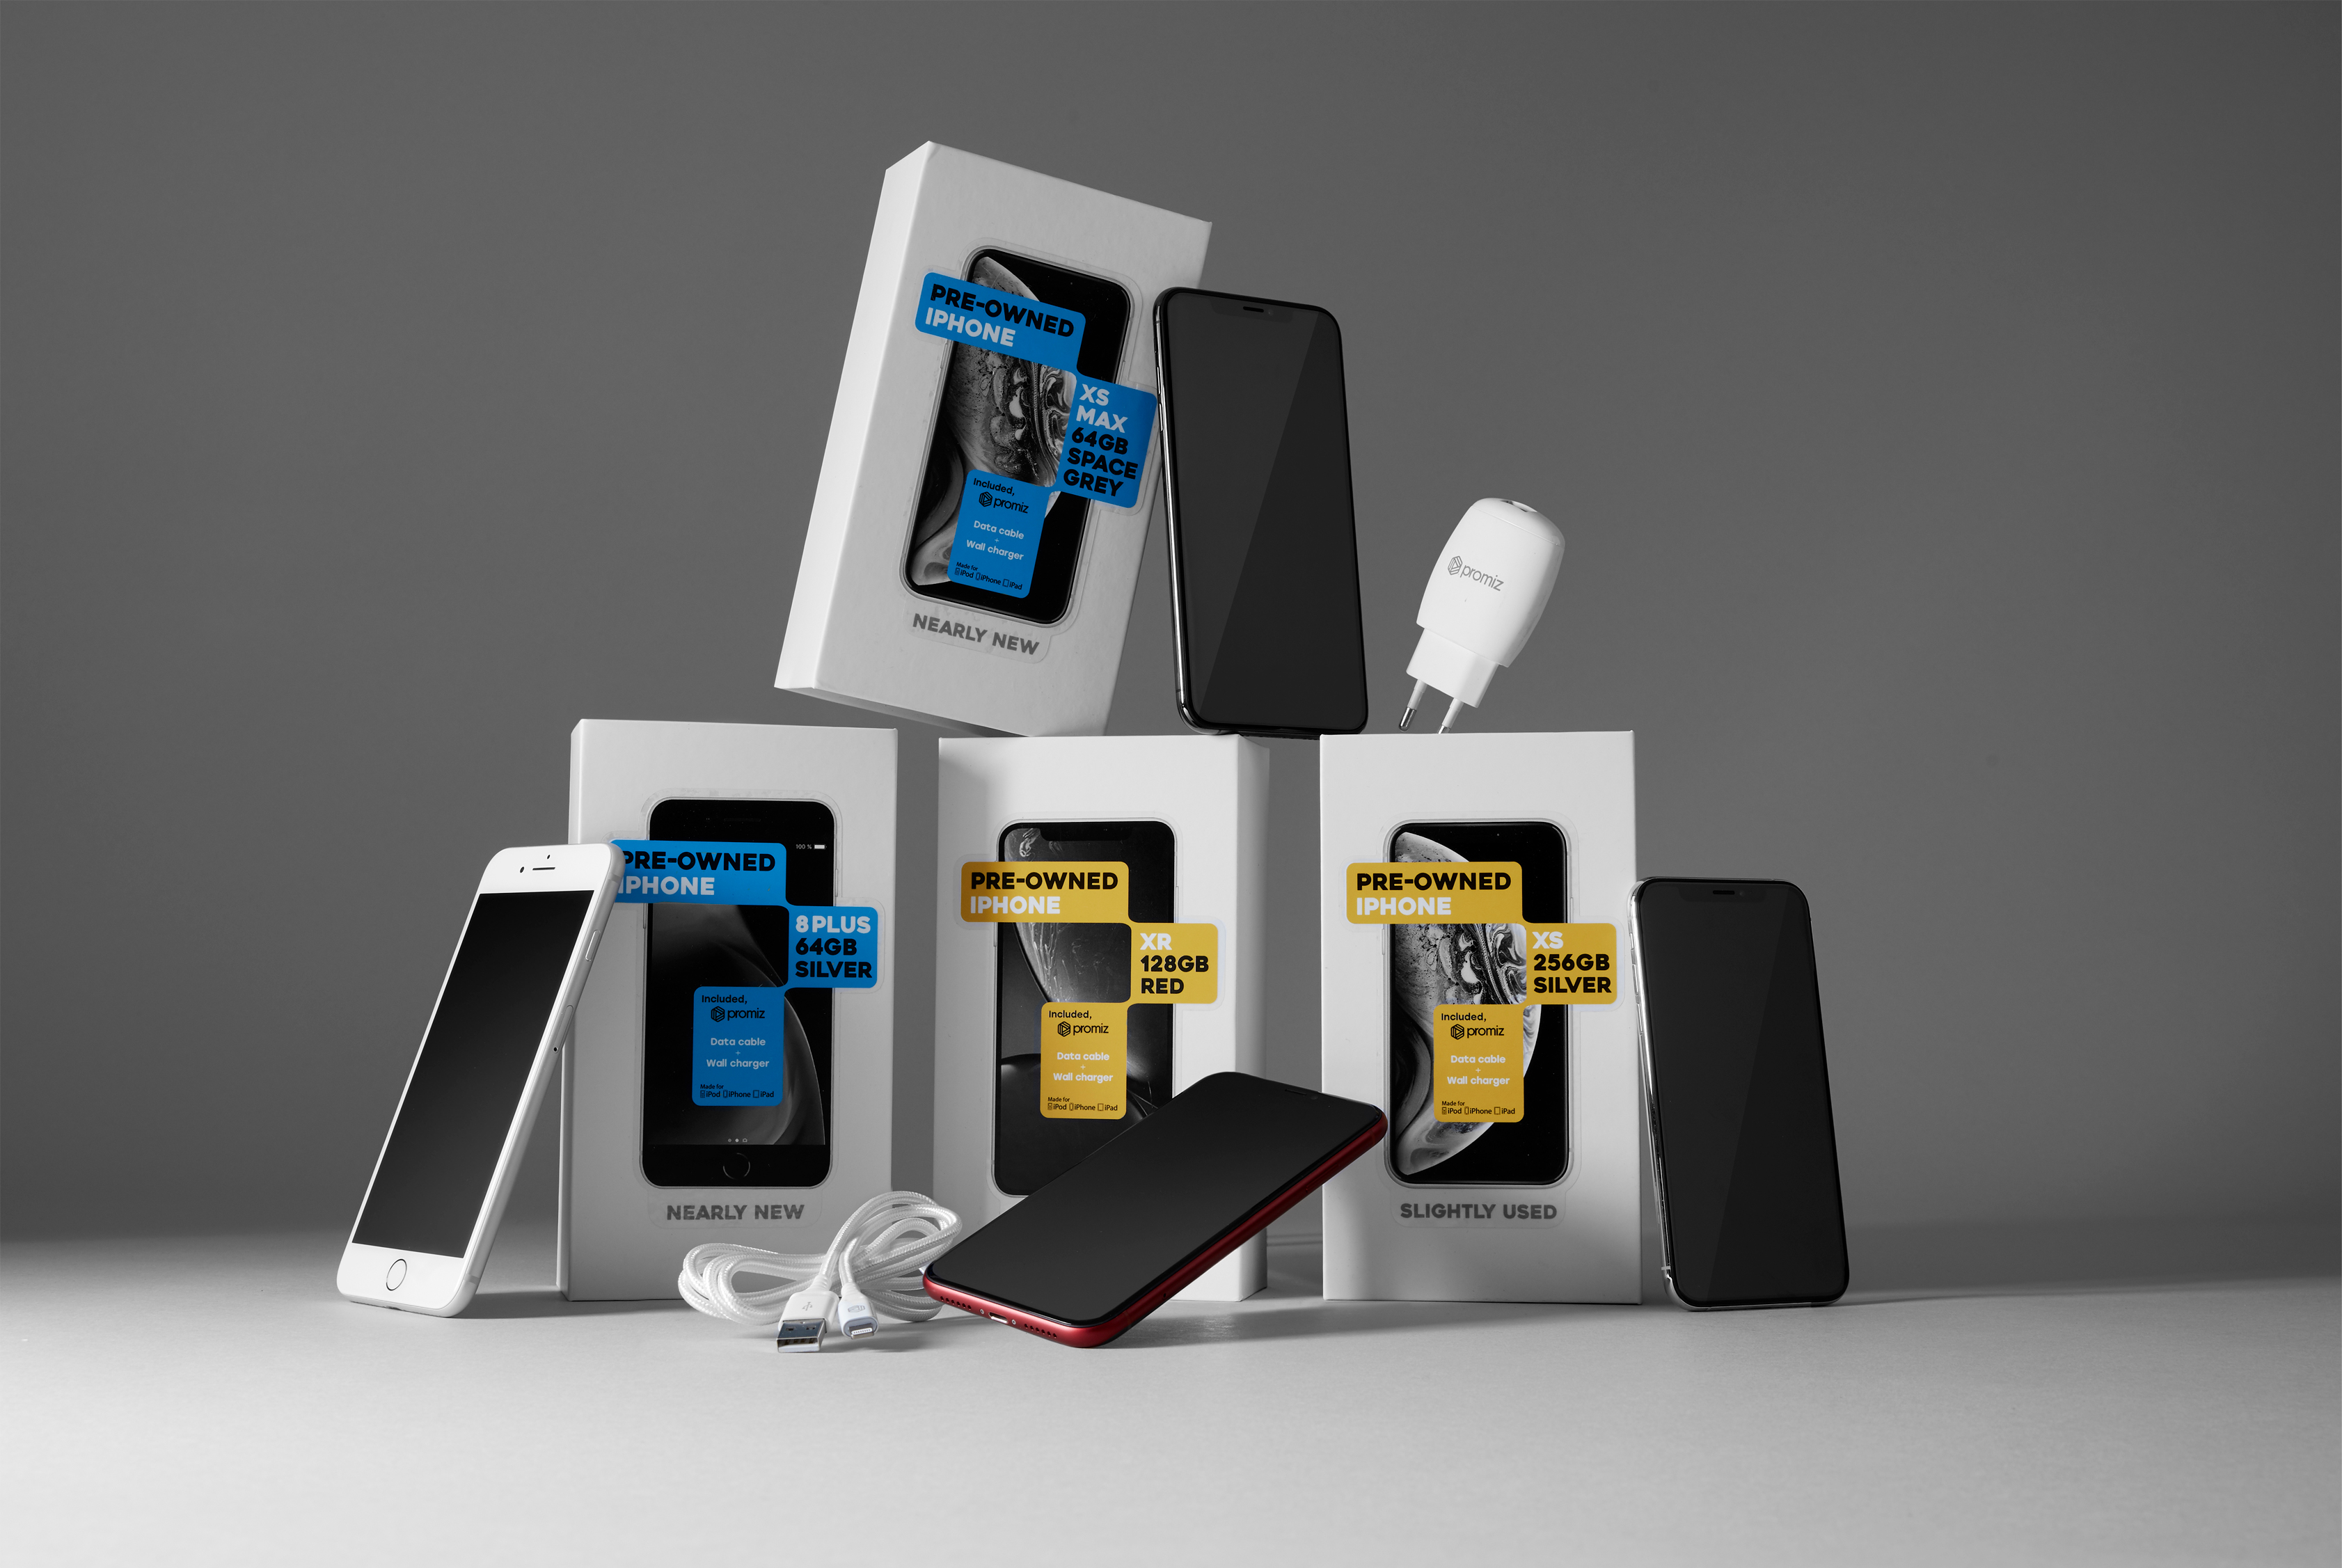 Pre-owned devices from Apple mobileparts.shop